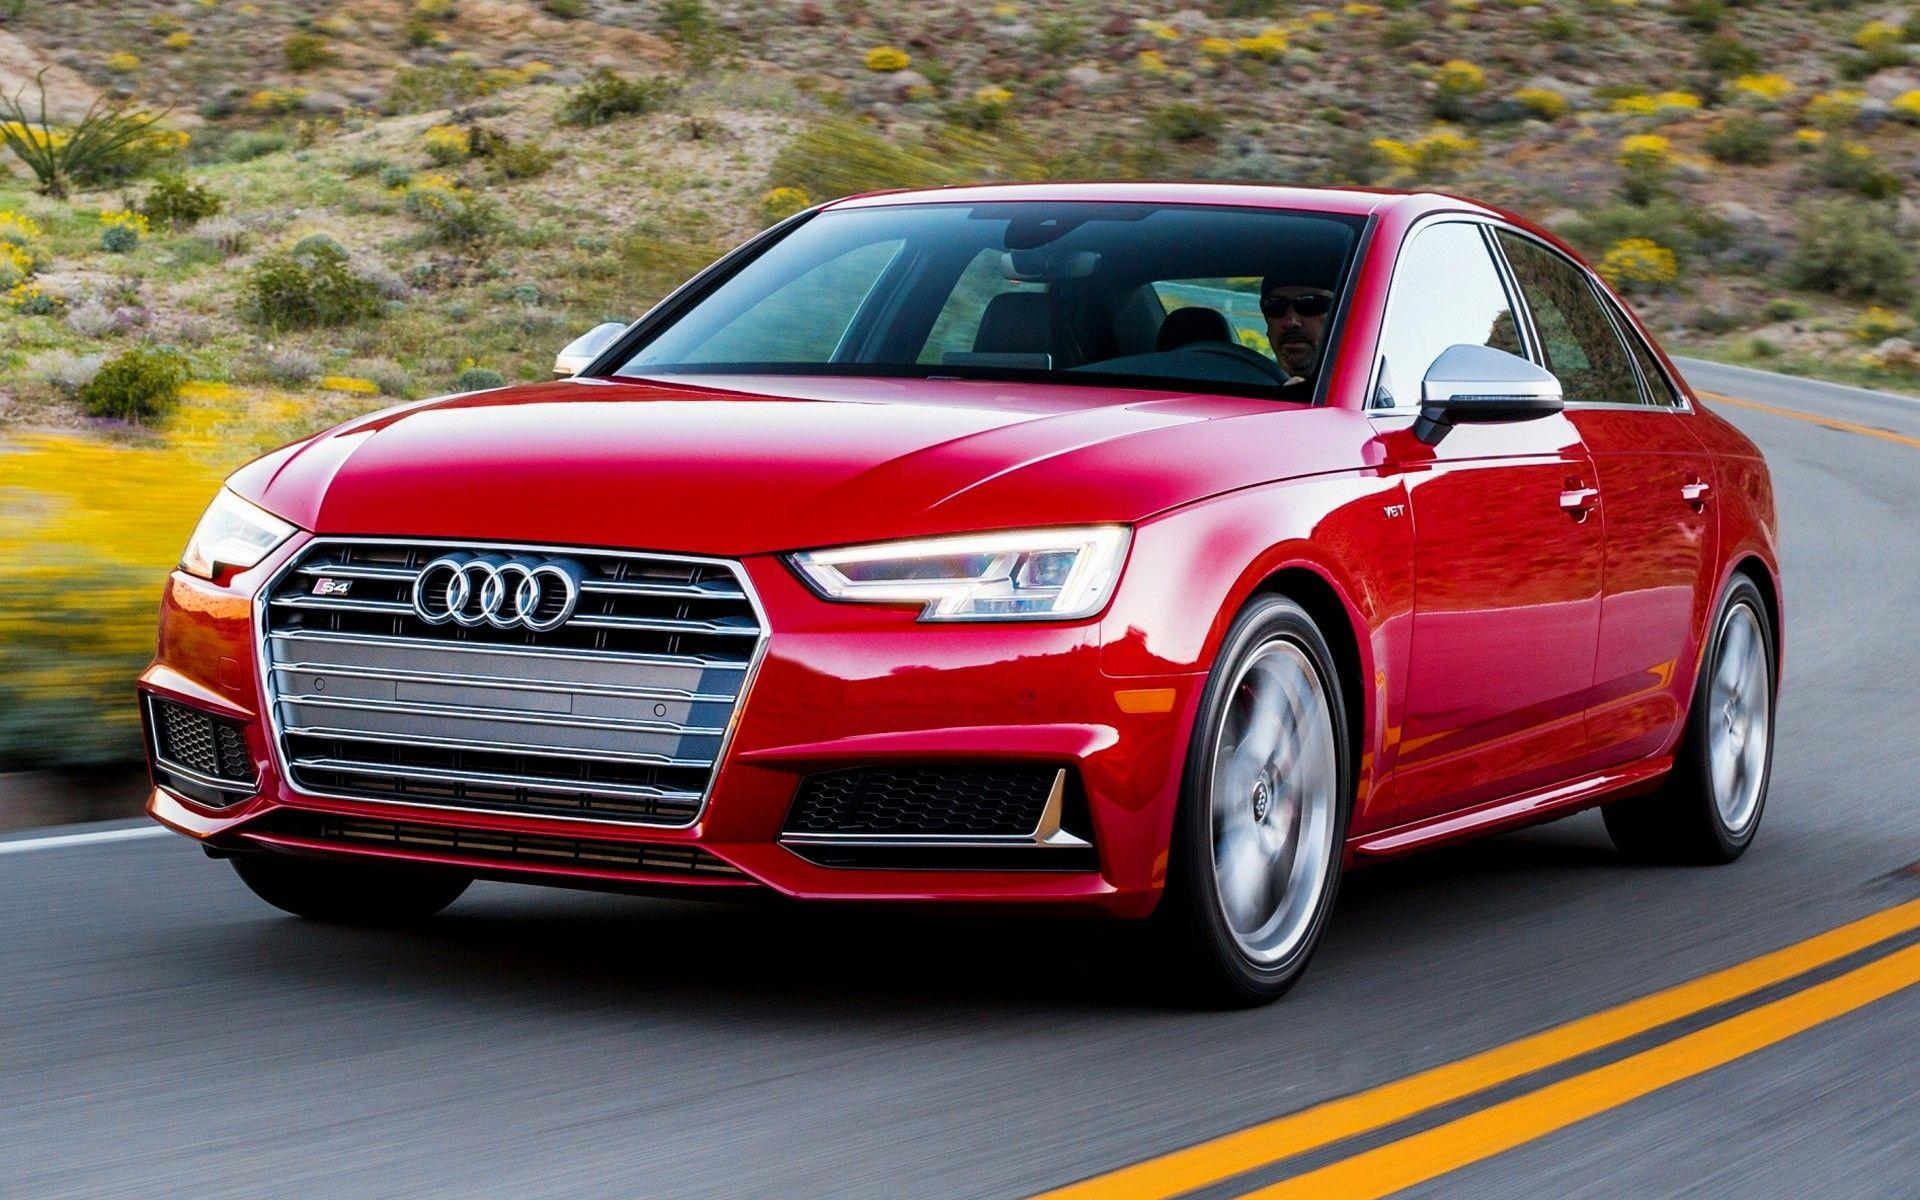 Audi S4 Sedan Wallpapers Beautiful Audi S4 Sedan 2018 Us Wallpapers